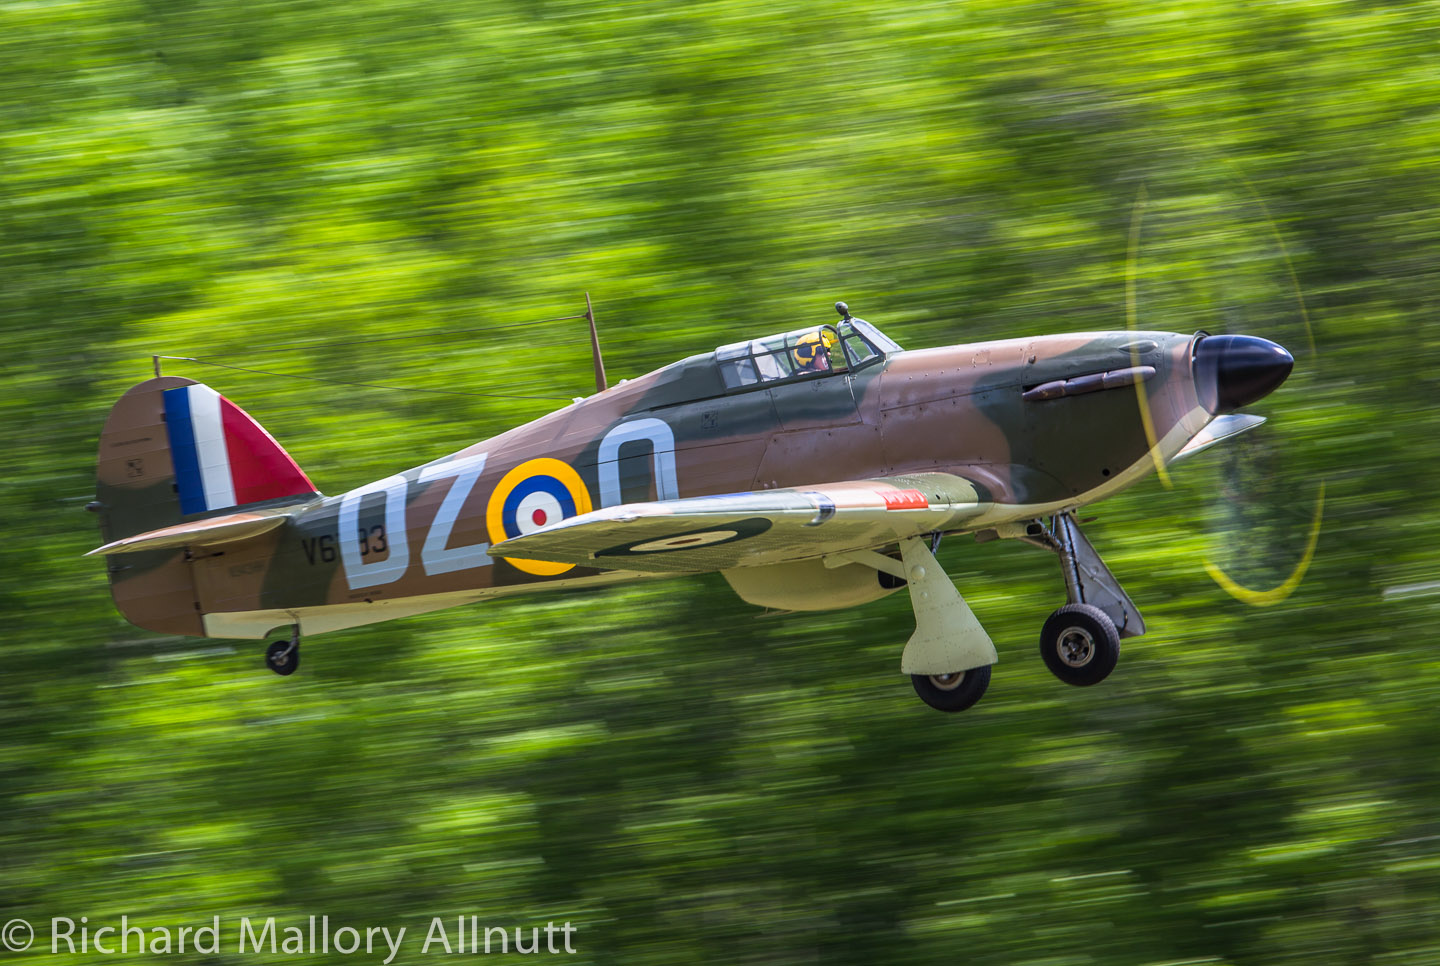 The Military Aviation Museum's Hawker Hurricane takes flight at the 2014 Warbirds Over the Beach air show. (photo by Richard Mallory Allnutt)